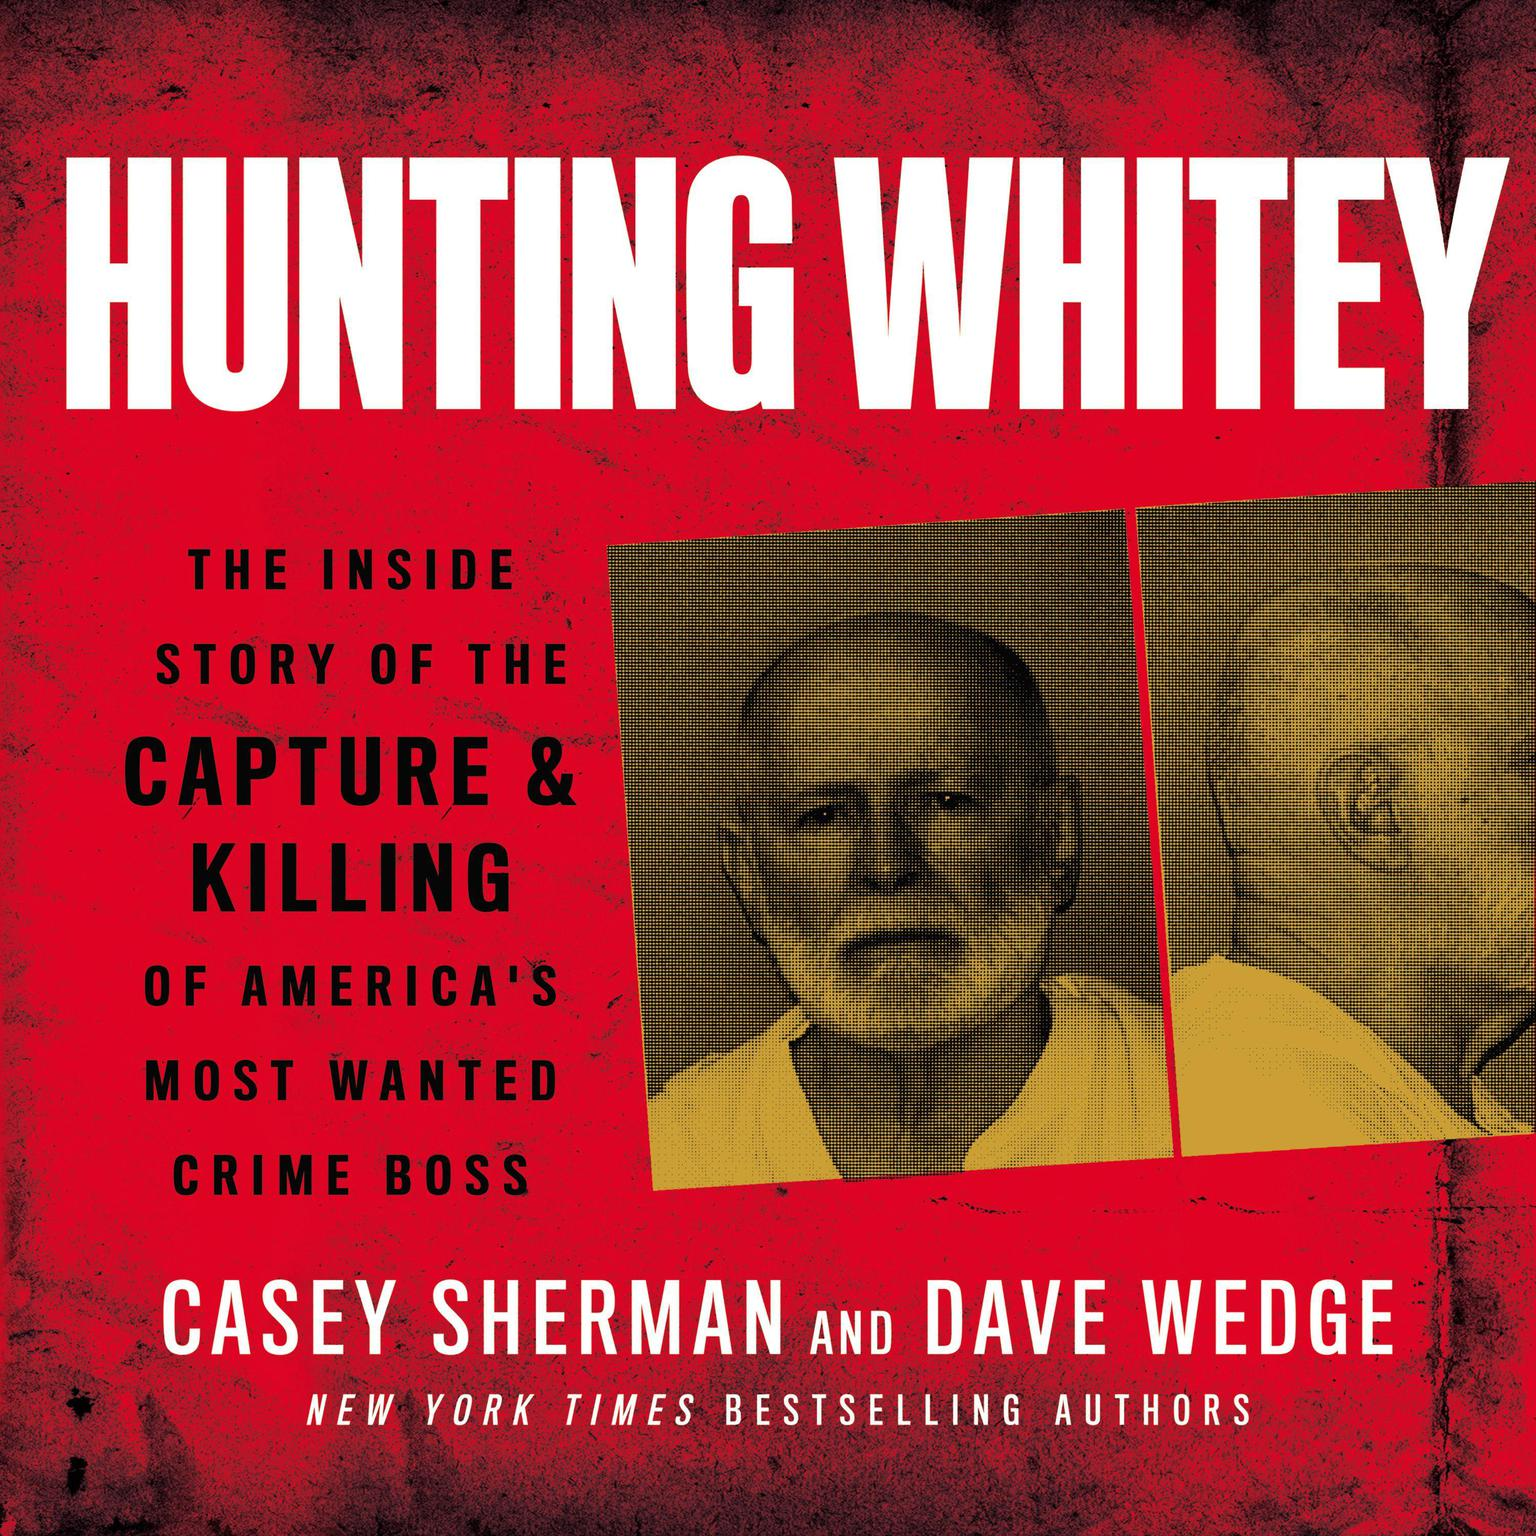 Printable Hunting Whitey: The Inside Story of the Capture & Killing of America's Most Wanted Crime Boss Audiobook Cover Art